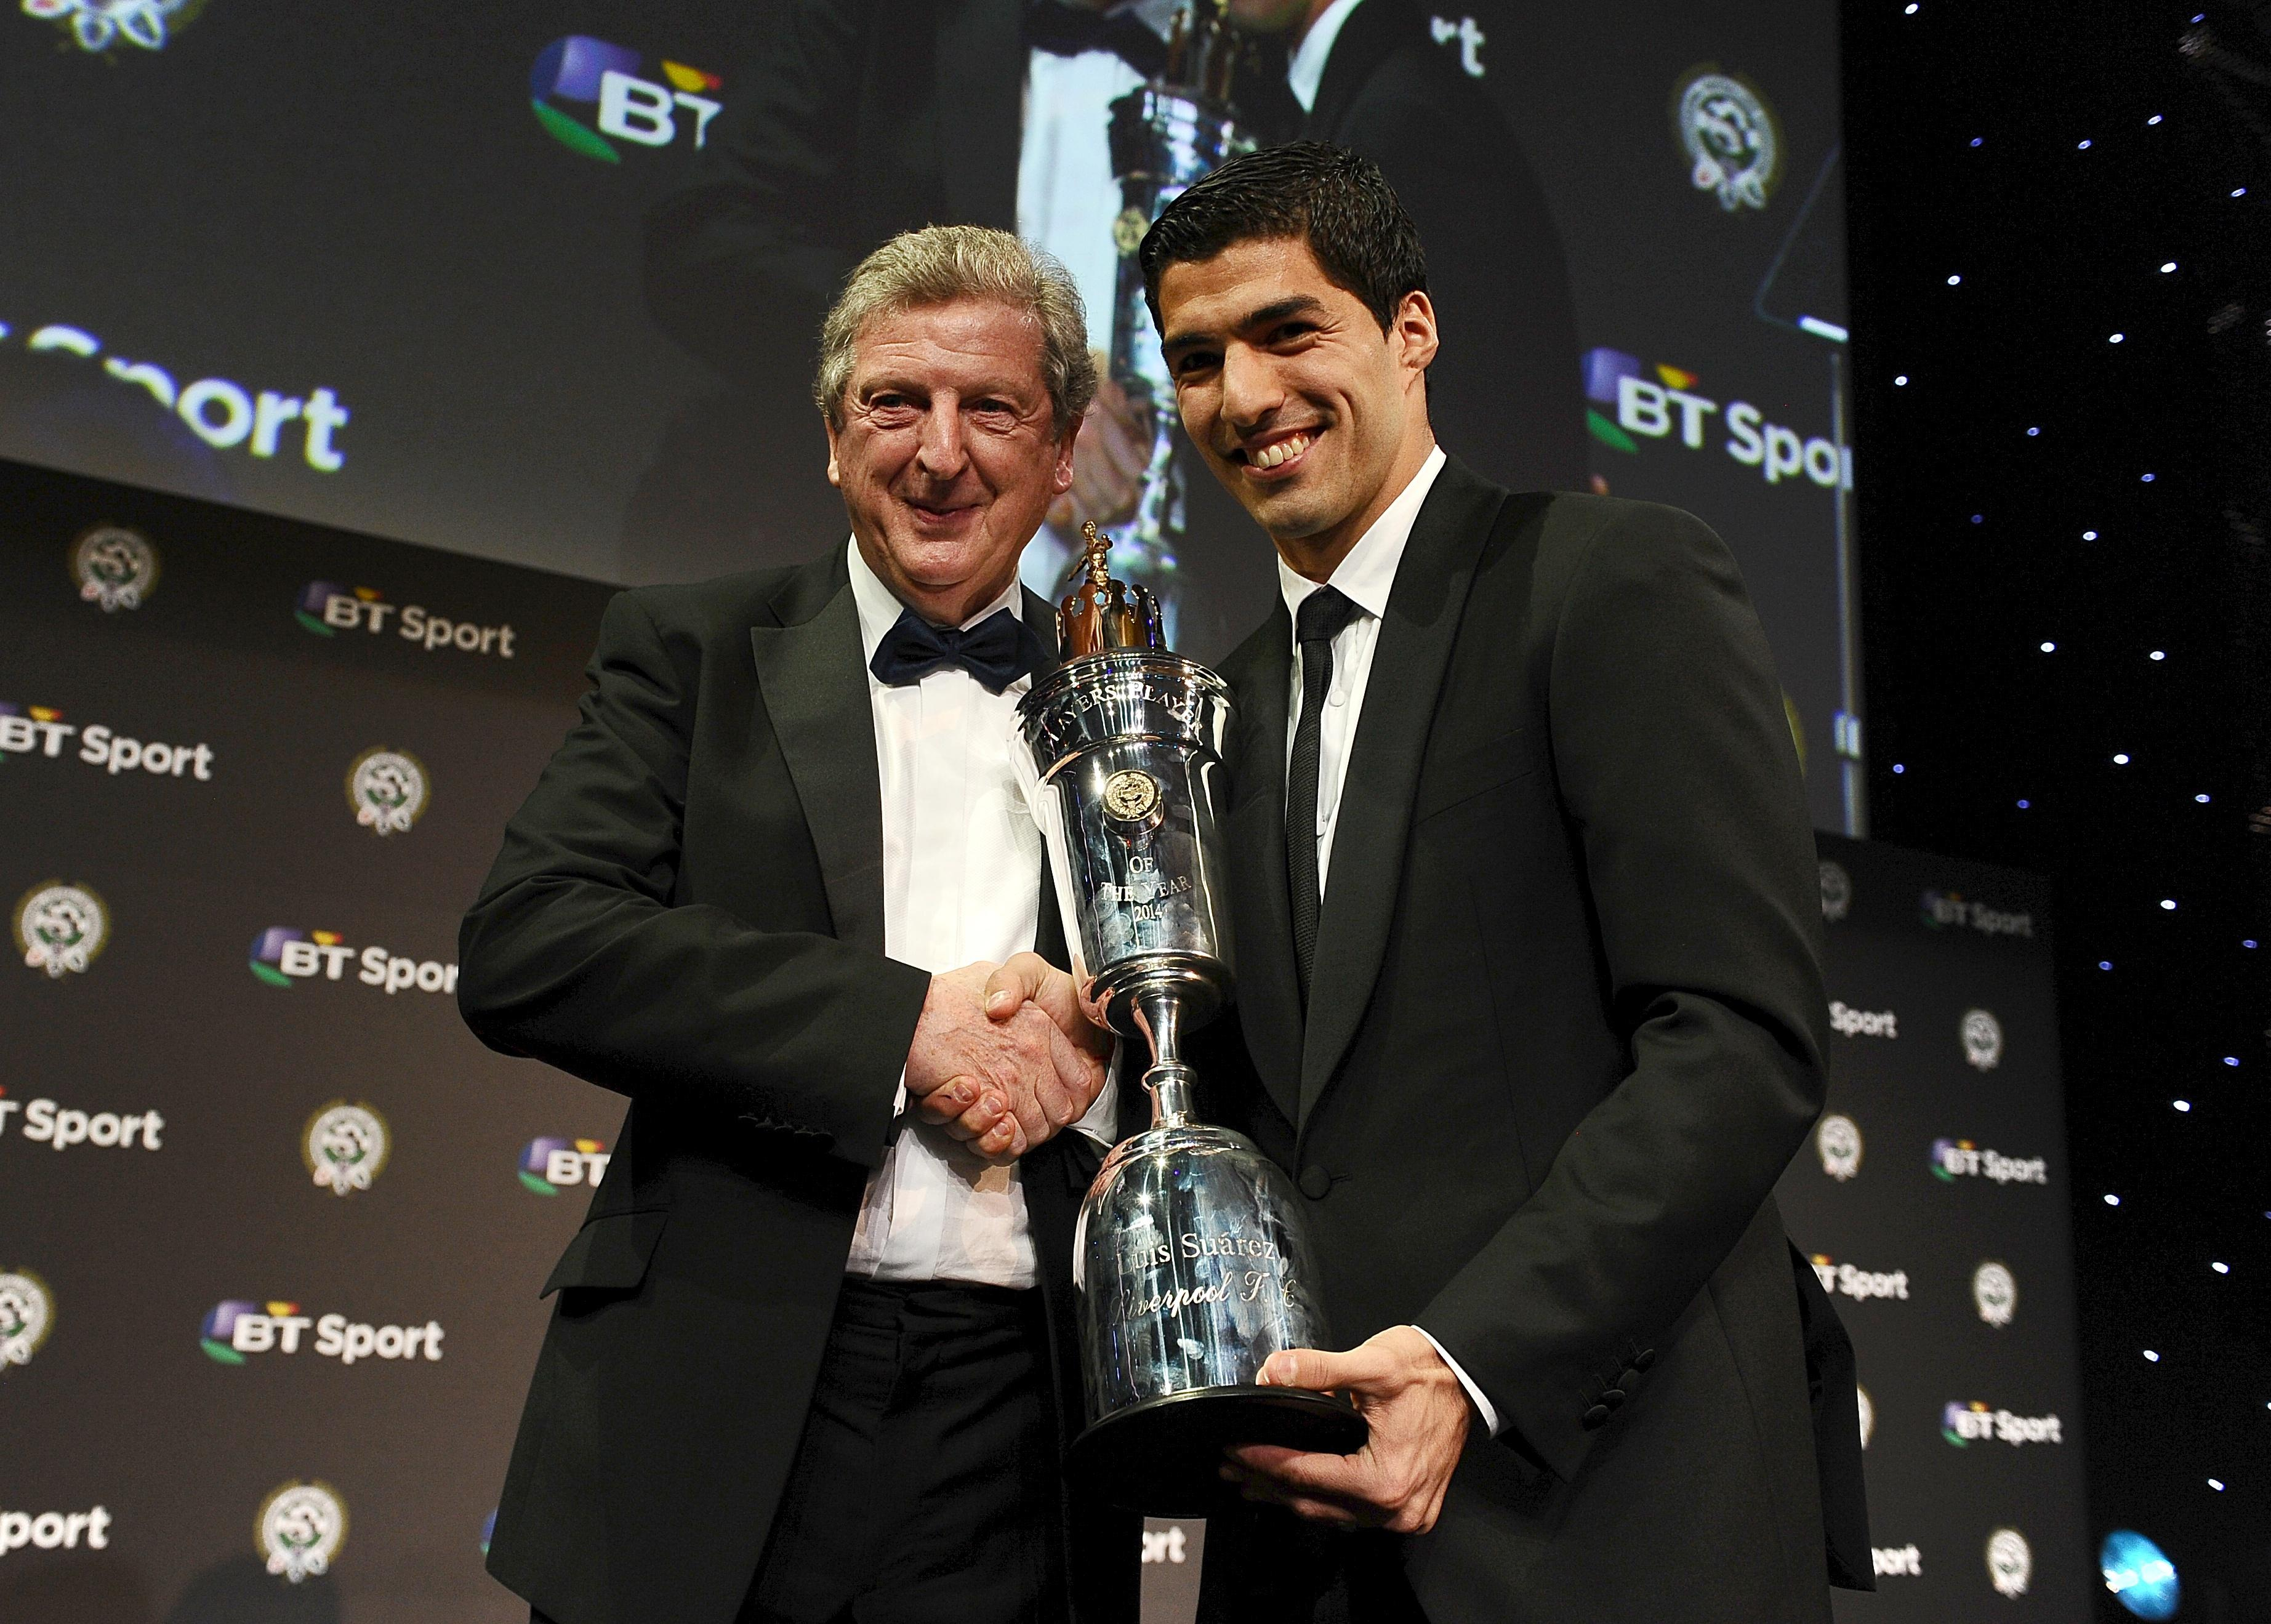 Suarez collects the 2013/14 PFA Player of the Year award from his idol